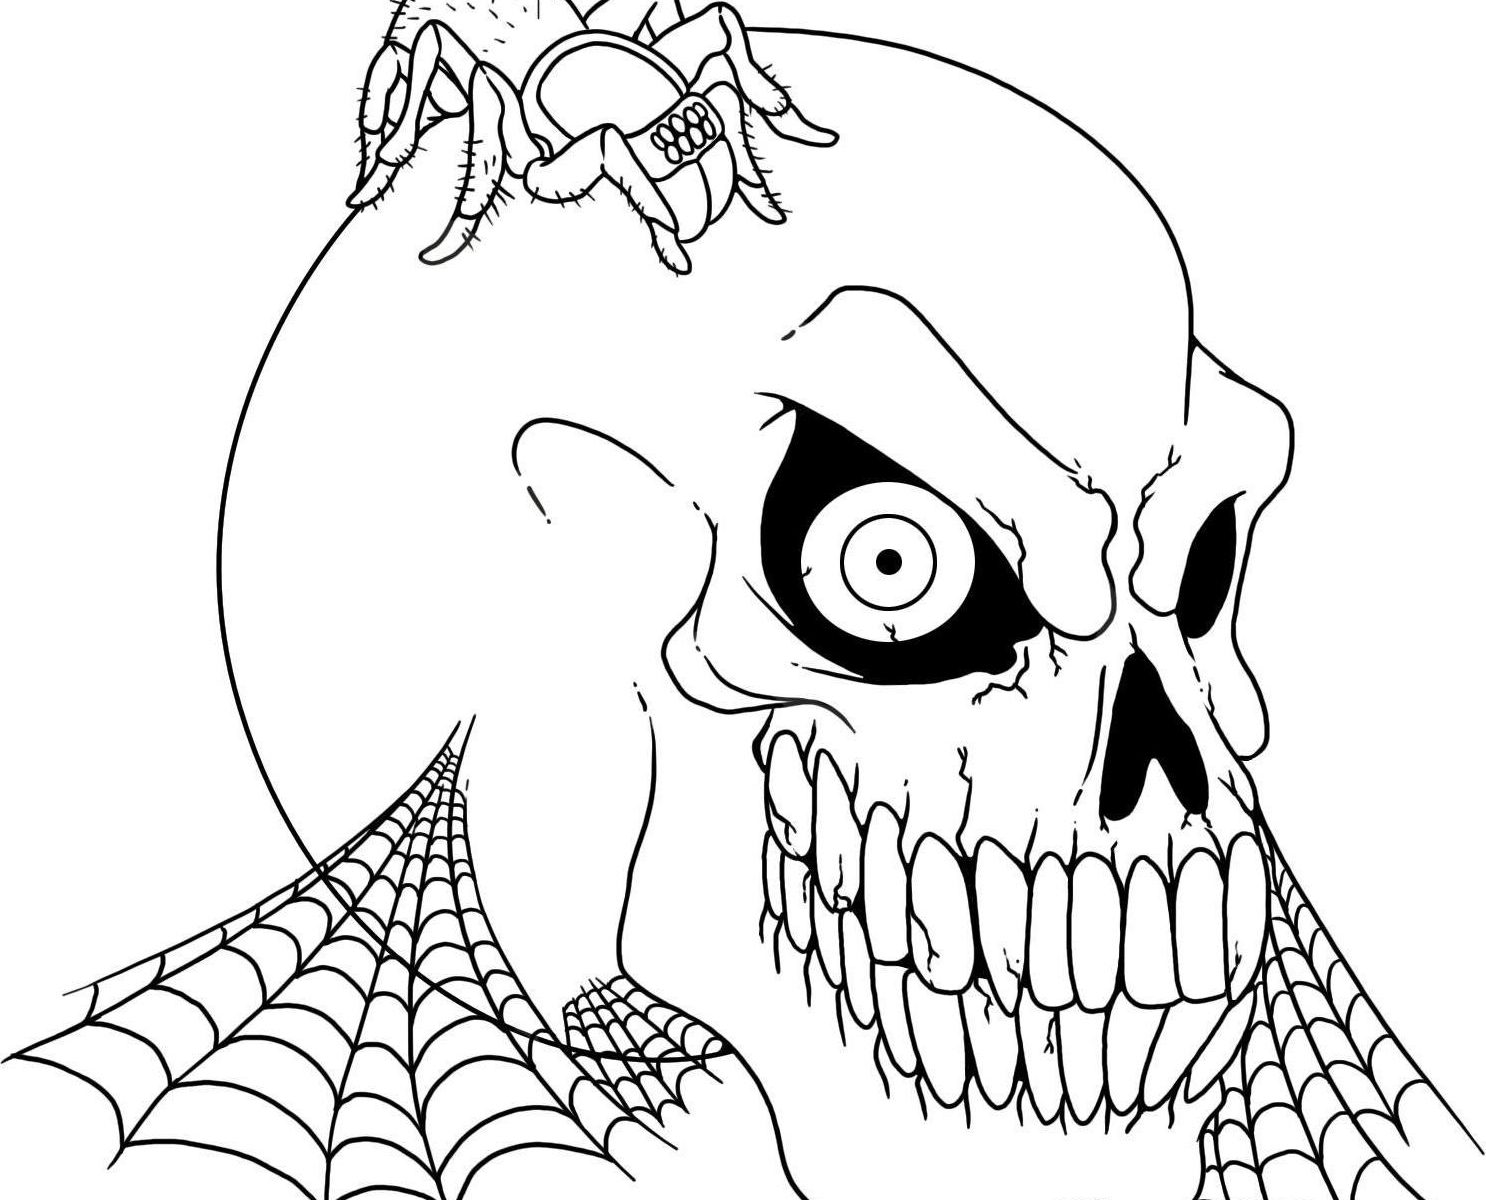 1486x1200 Spooky Monsters Coloring Pages Creepy Halloween Printable Adul